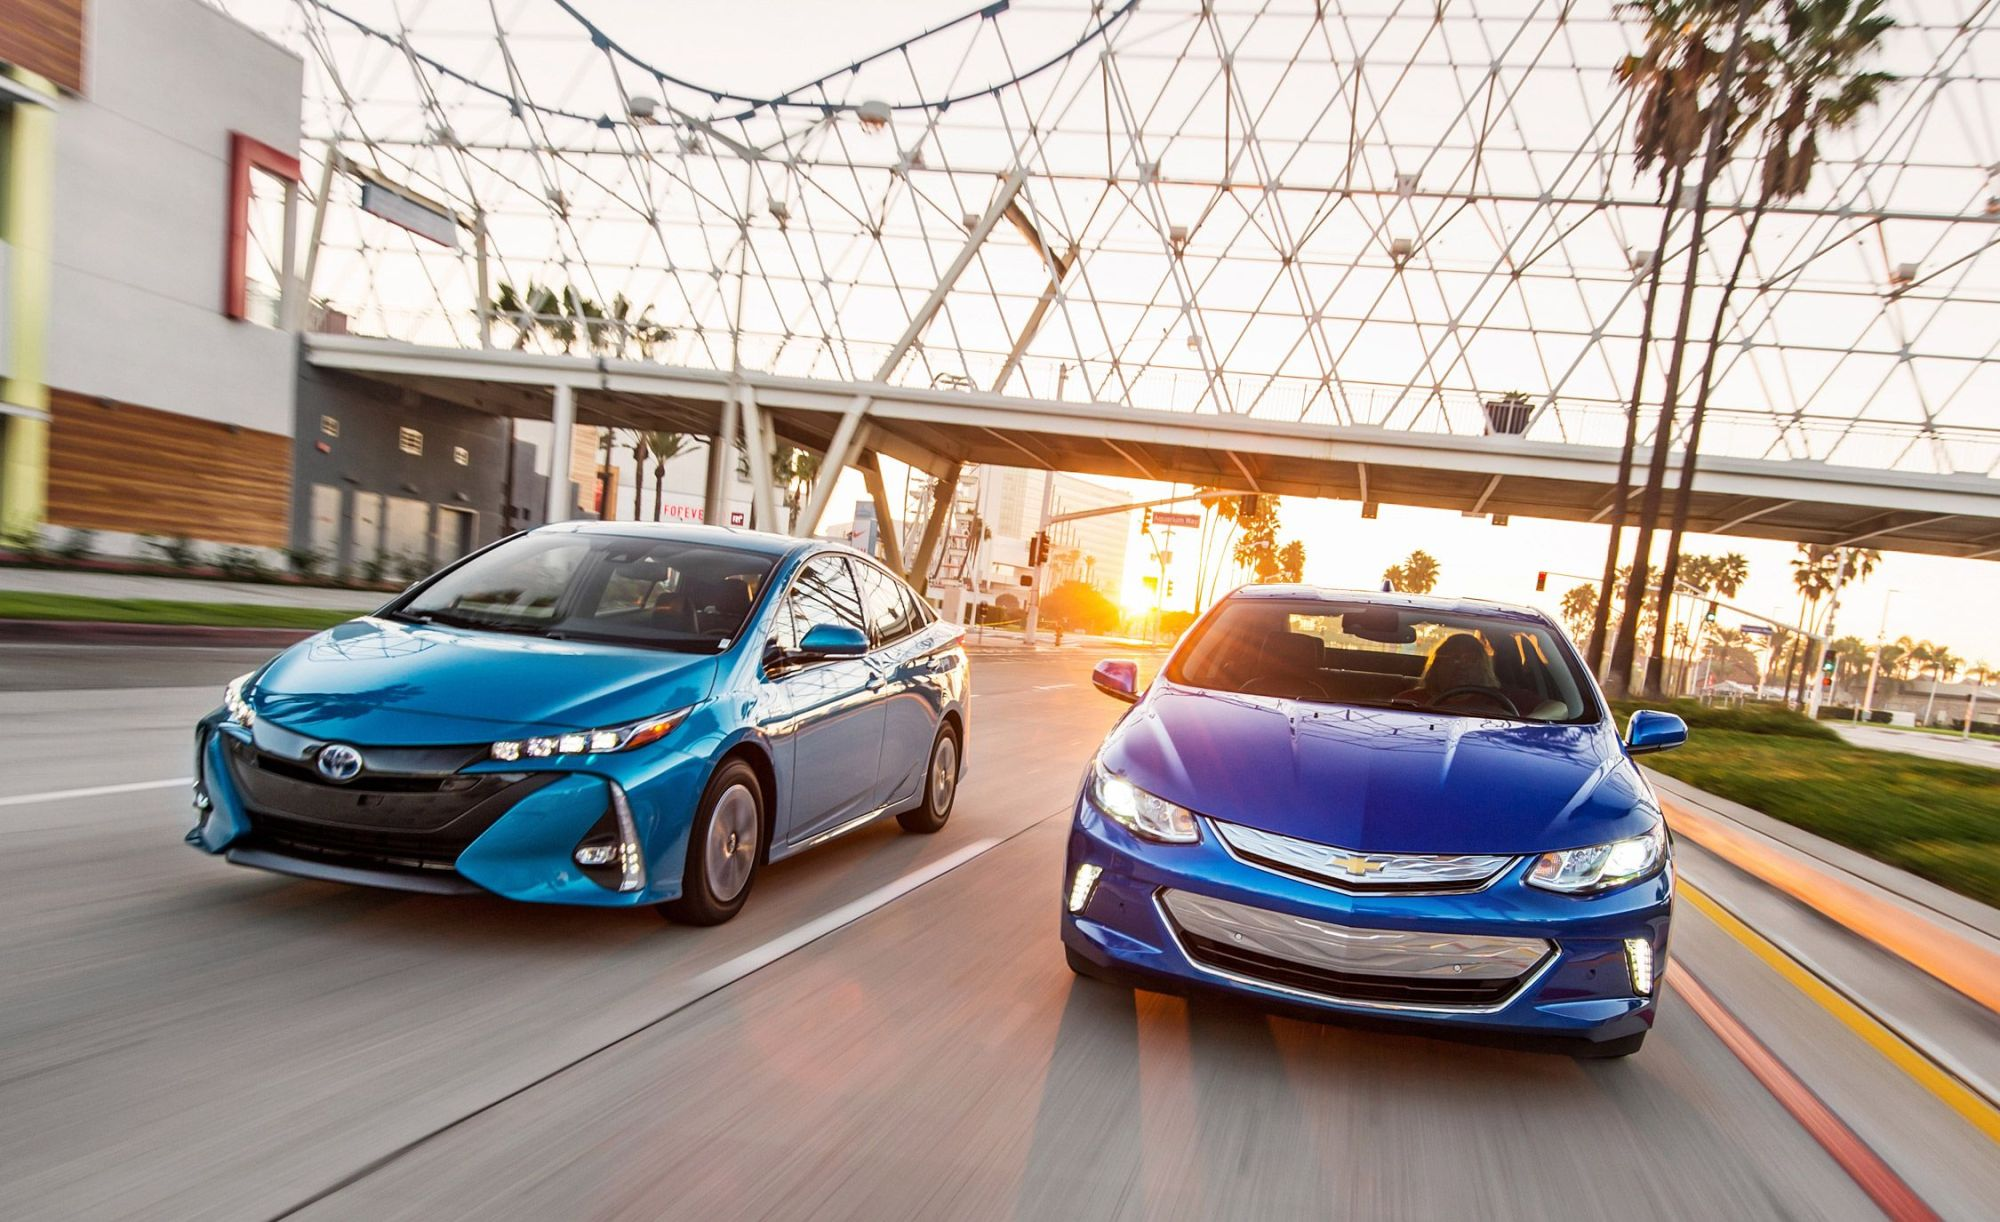 hight resolution of 2017 chevrolet volt premier vs 2017 toyota prius prime advanced comparison test car and driver